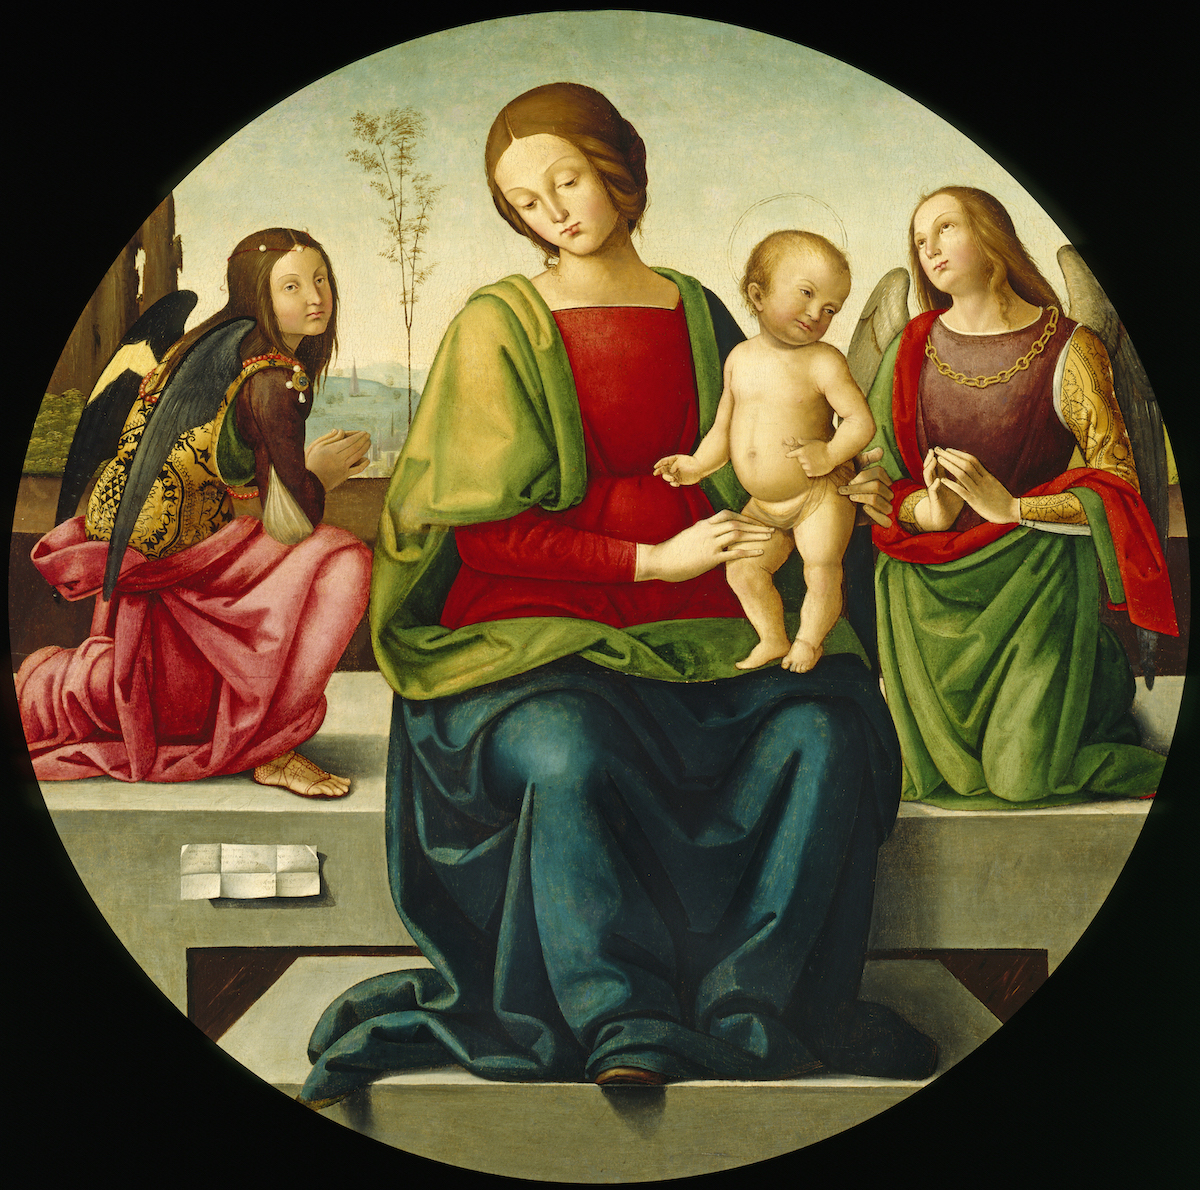 Madonna and Child with Angels by Master of the Greenville Tondo, Italian, 15th century, Oil on panel, Museum & Gallery at Bob Jones University, Greenville, SC | Photo provided by Museum & Gallery at Bob Jones University